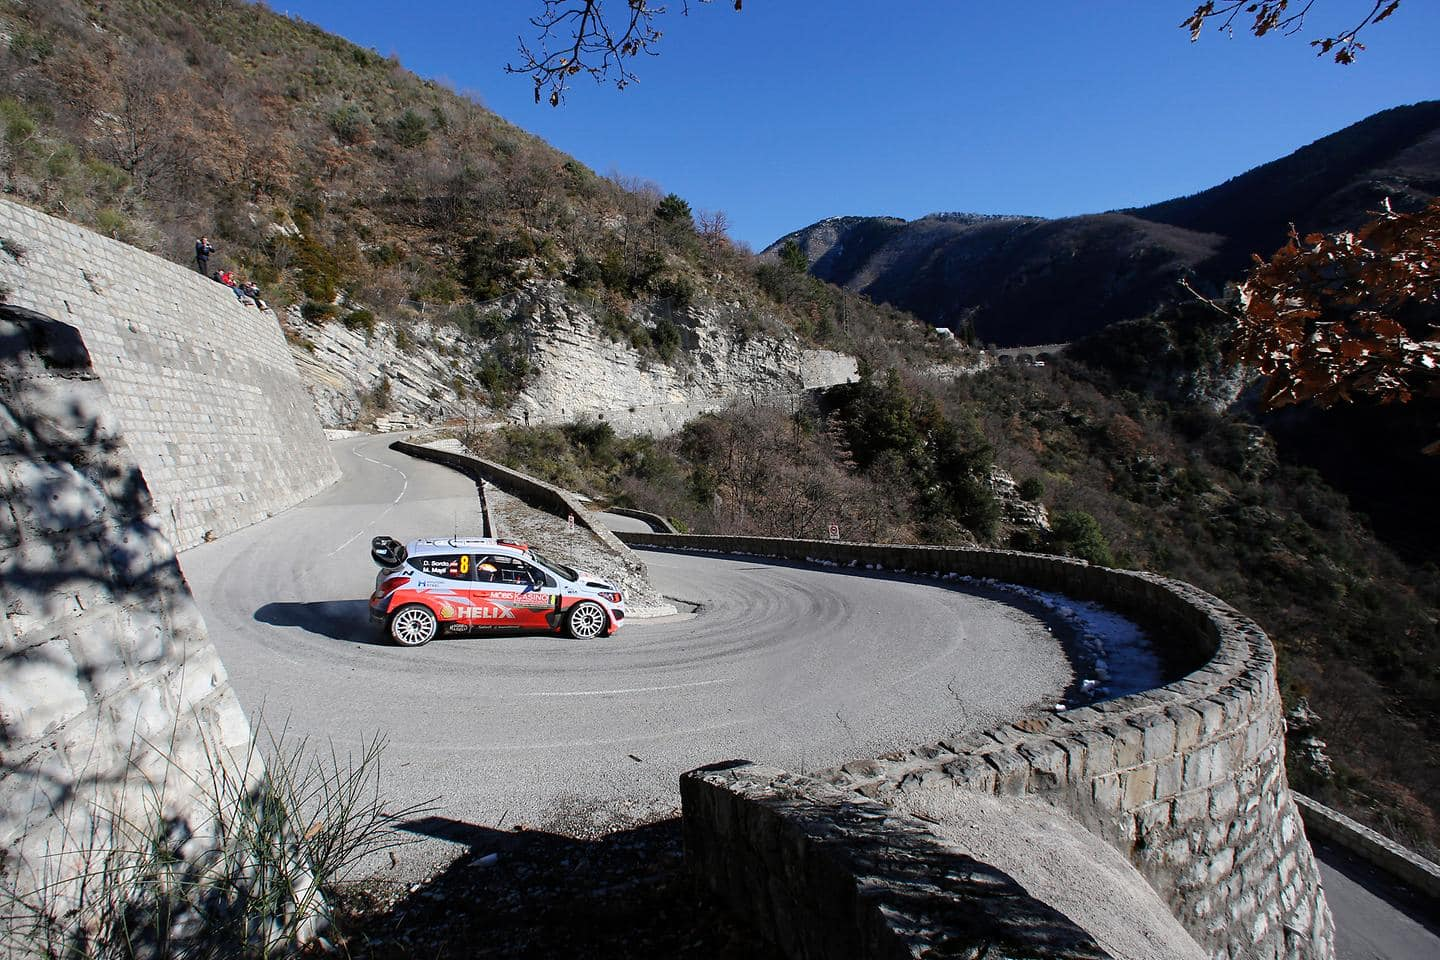 Hyundai Motorsport fights to the finish with both cars in Rallye Monte Carlo